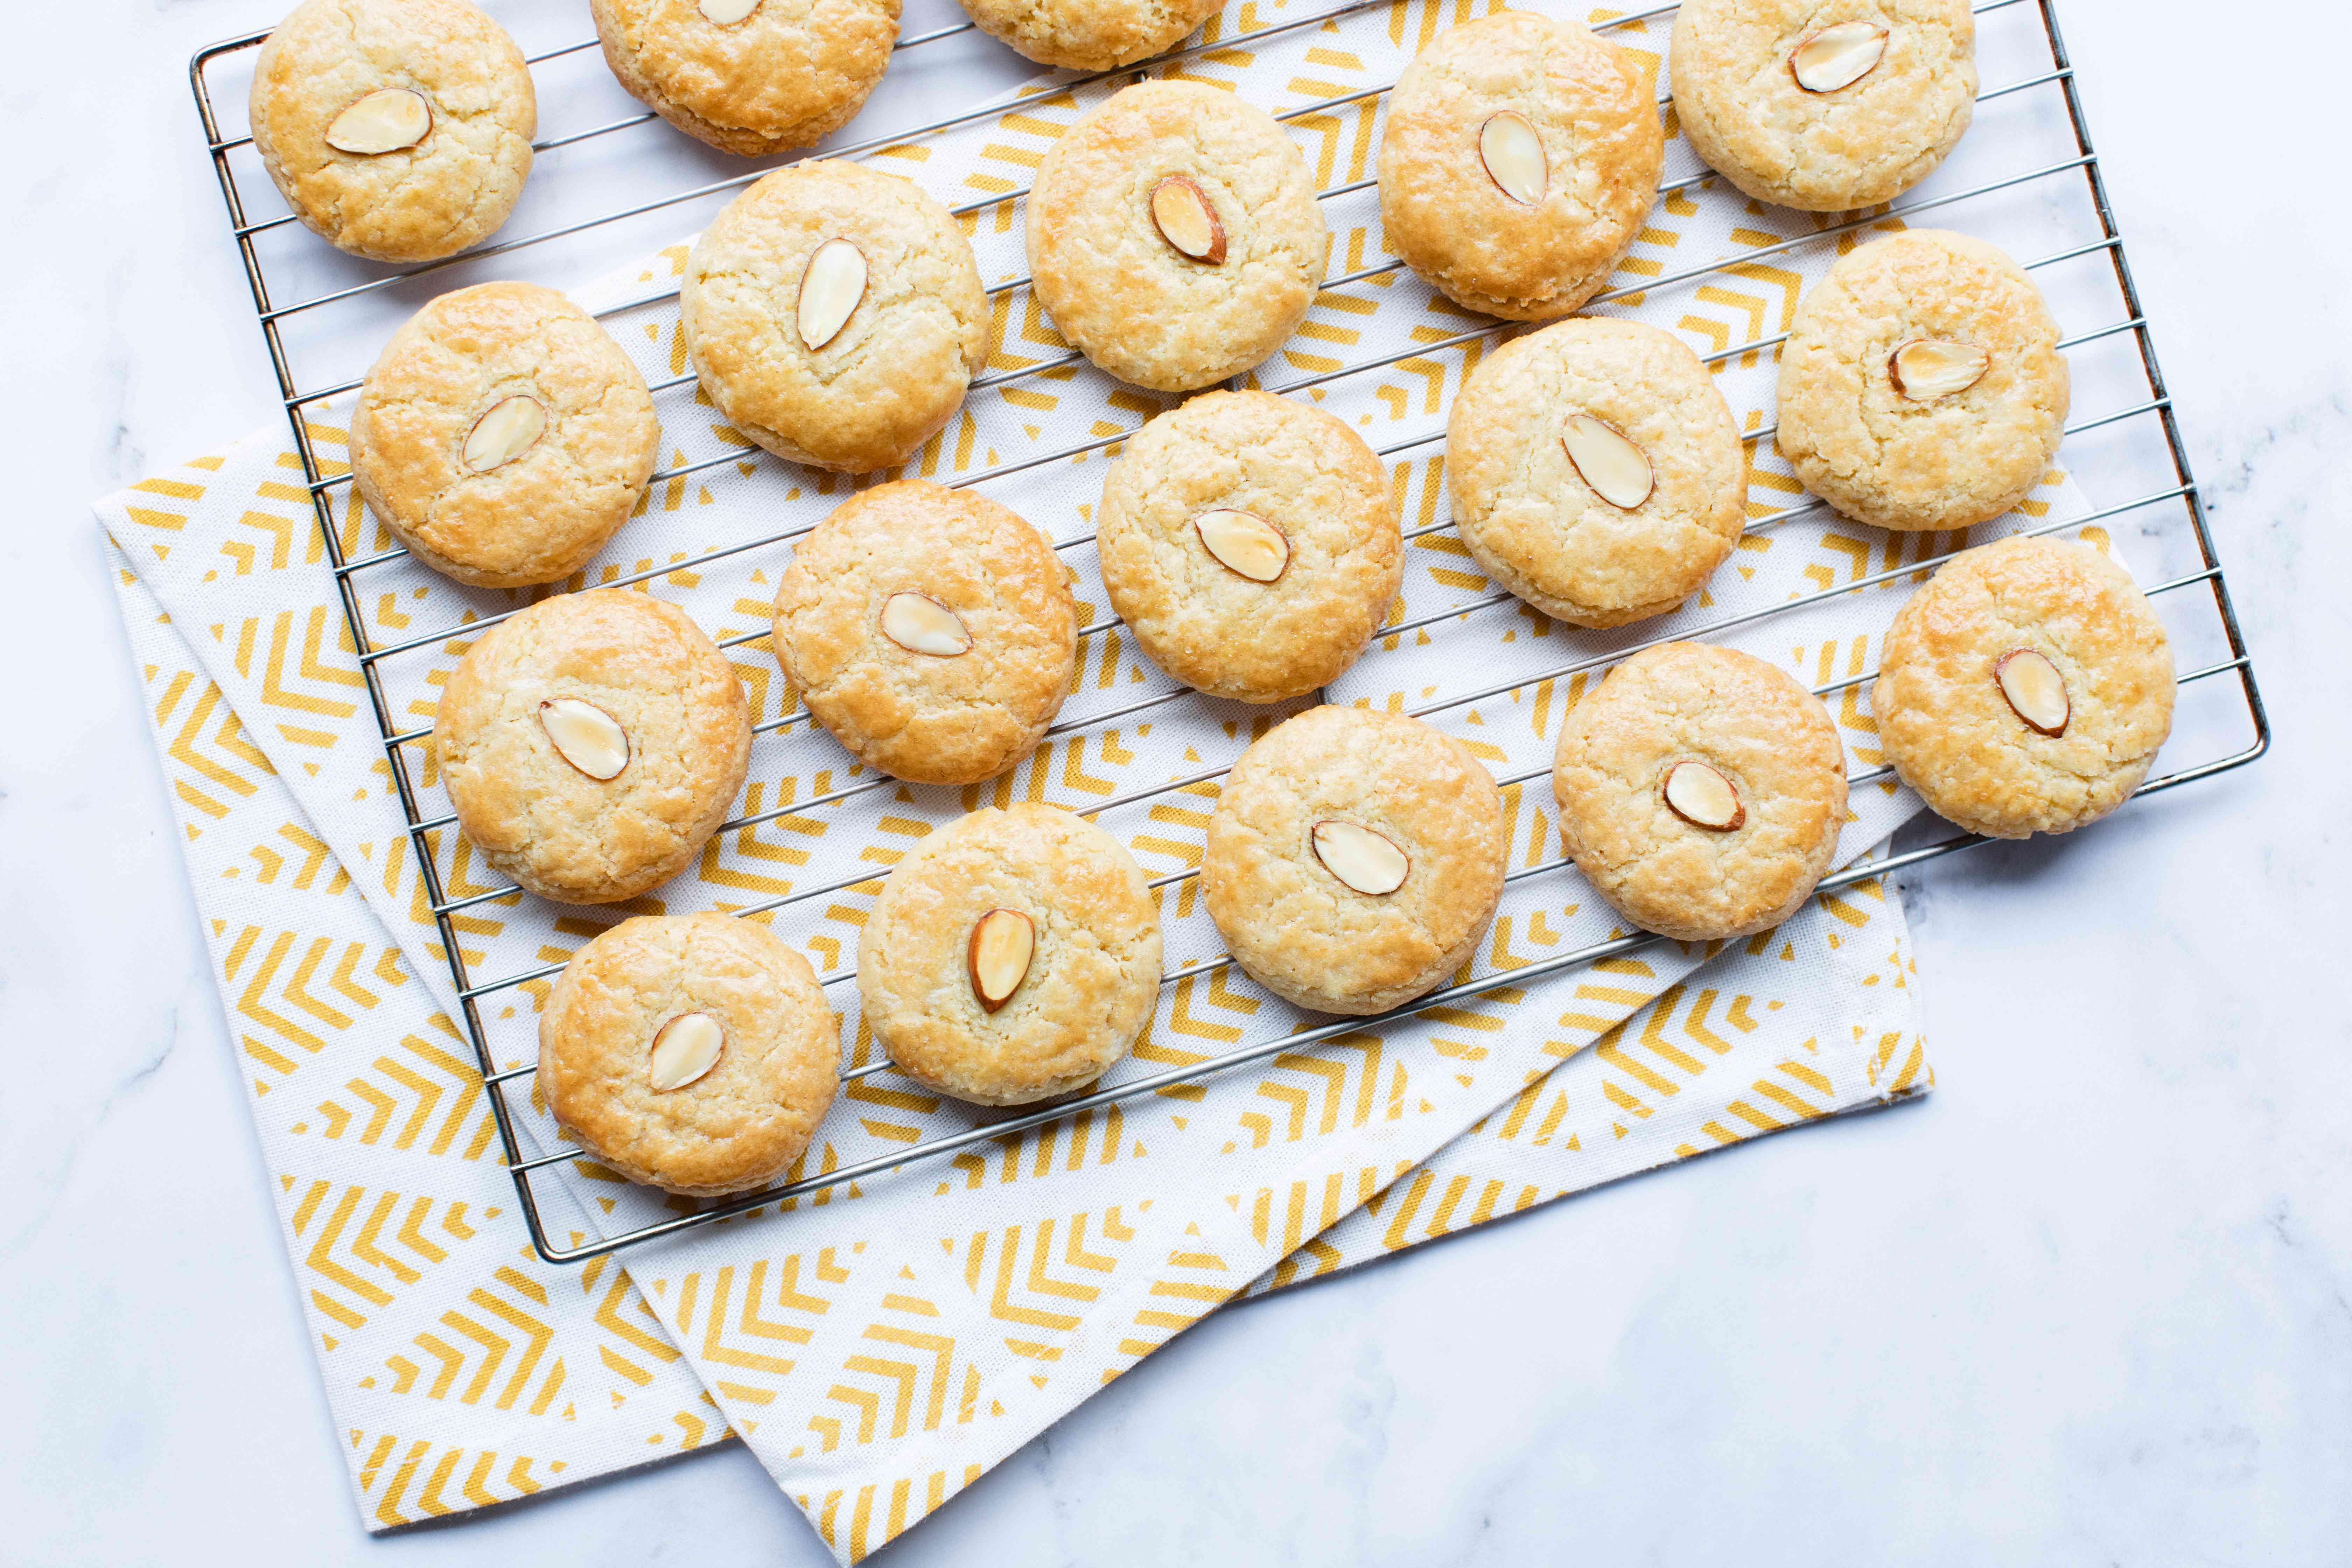 Overhead view of almond cookies on a cooling tray.